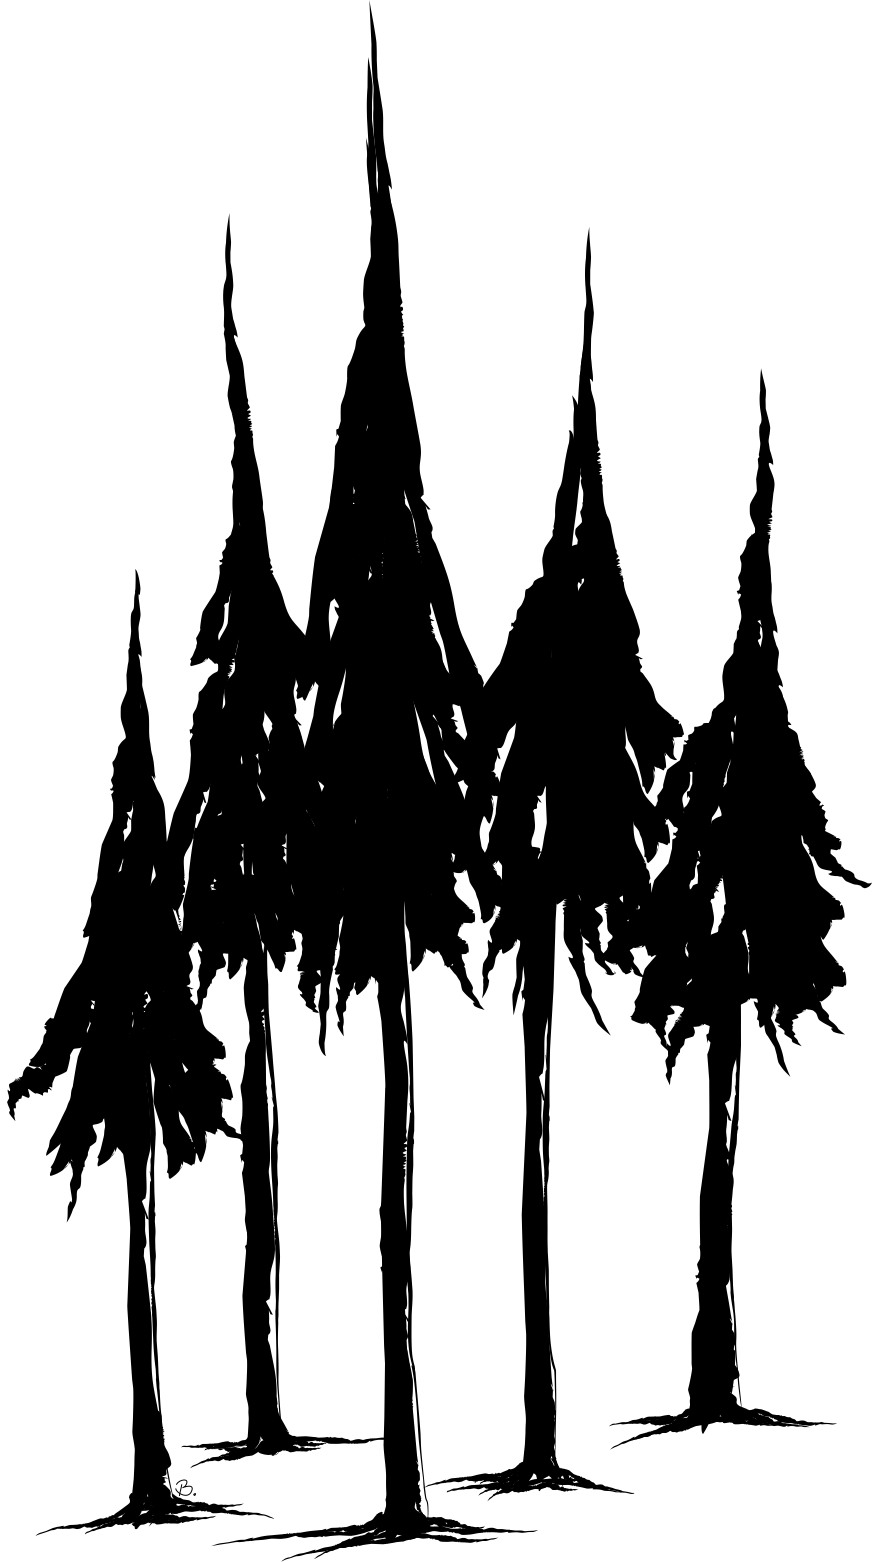 Pine Tree Drawings - ClipArt Best